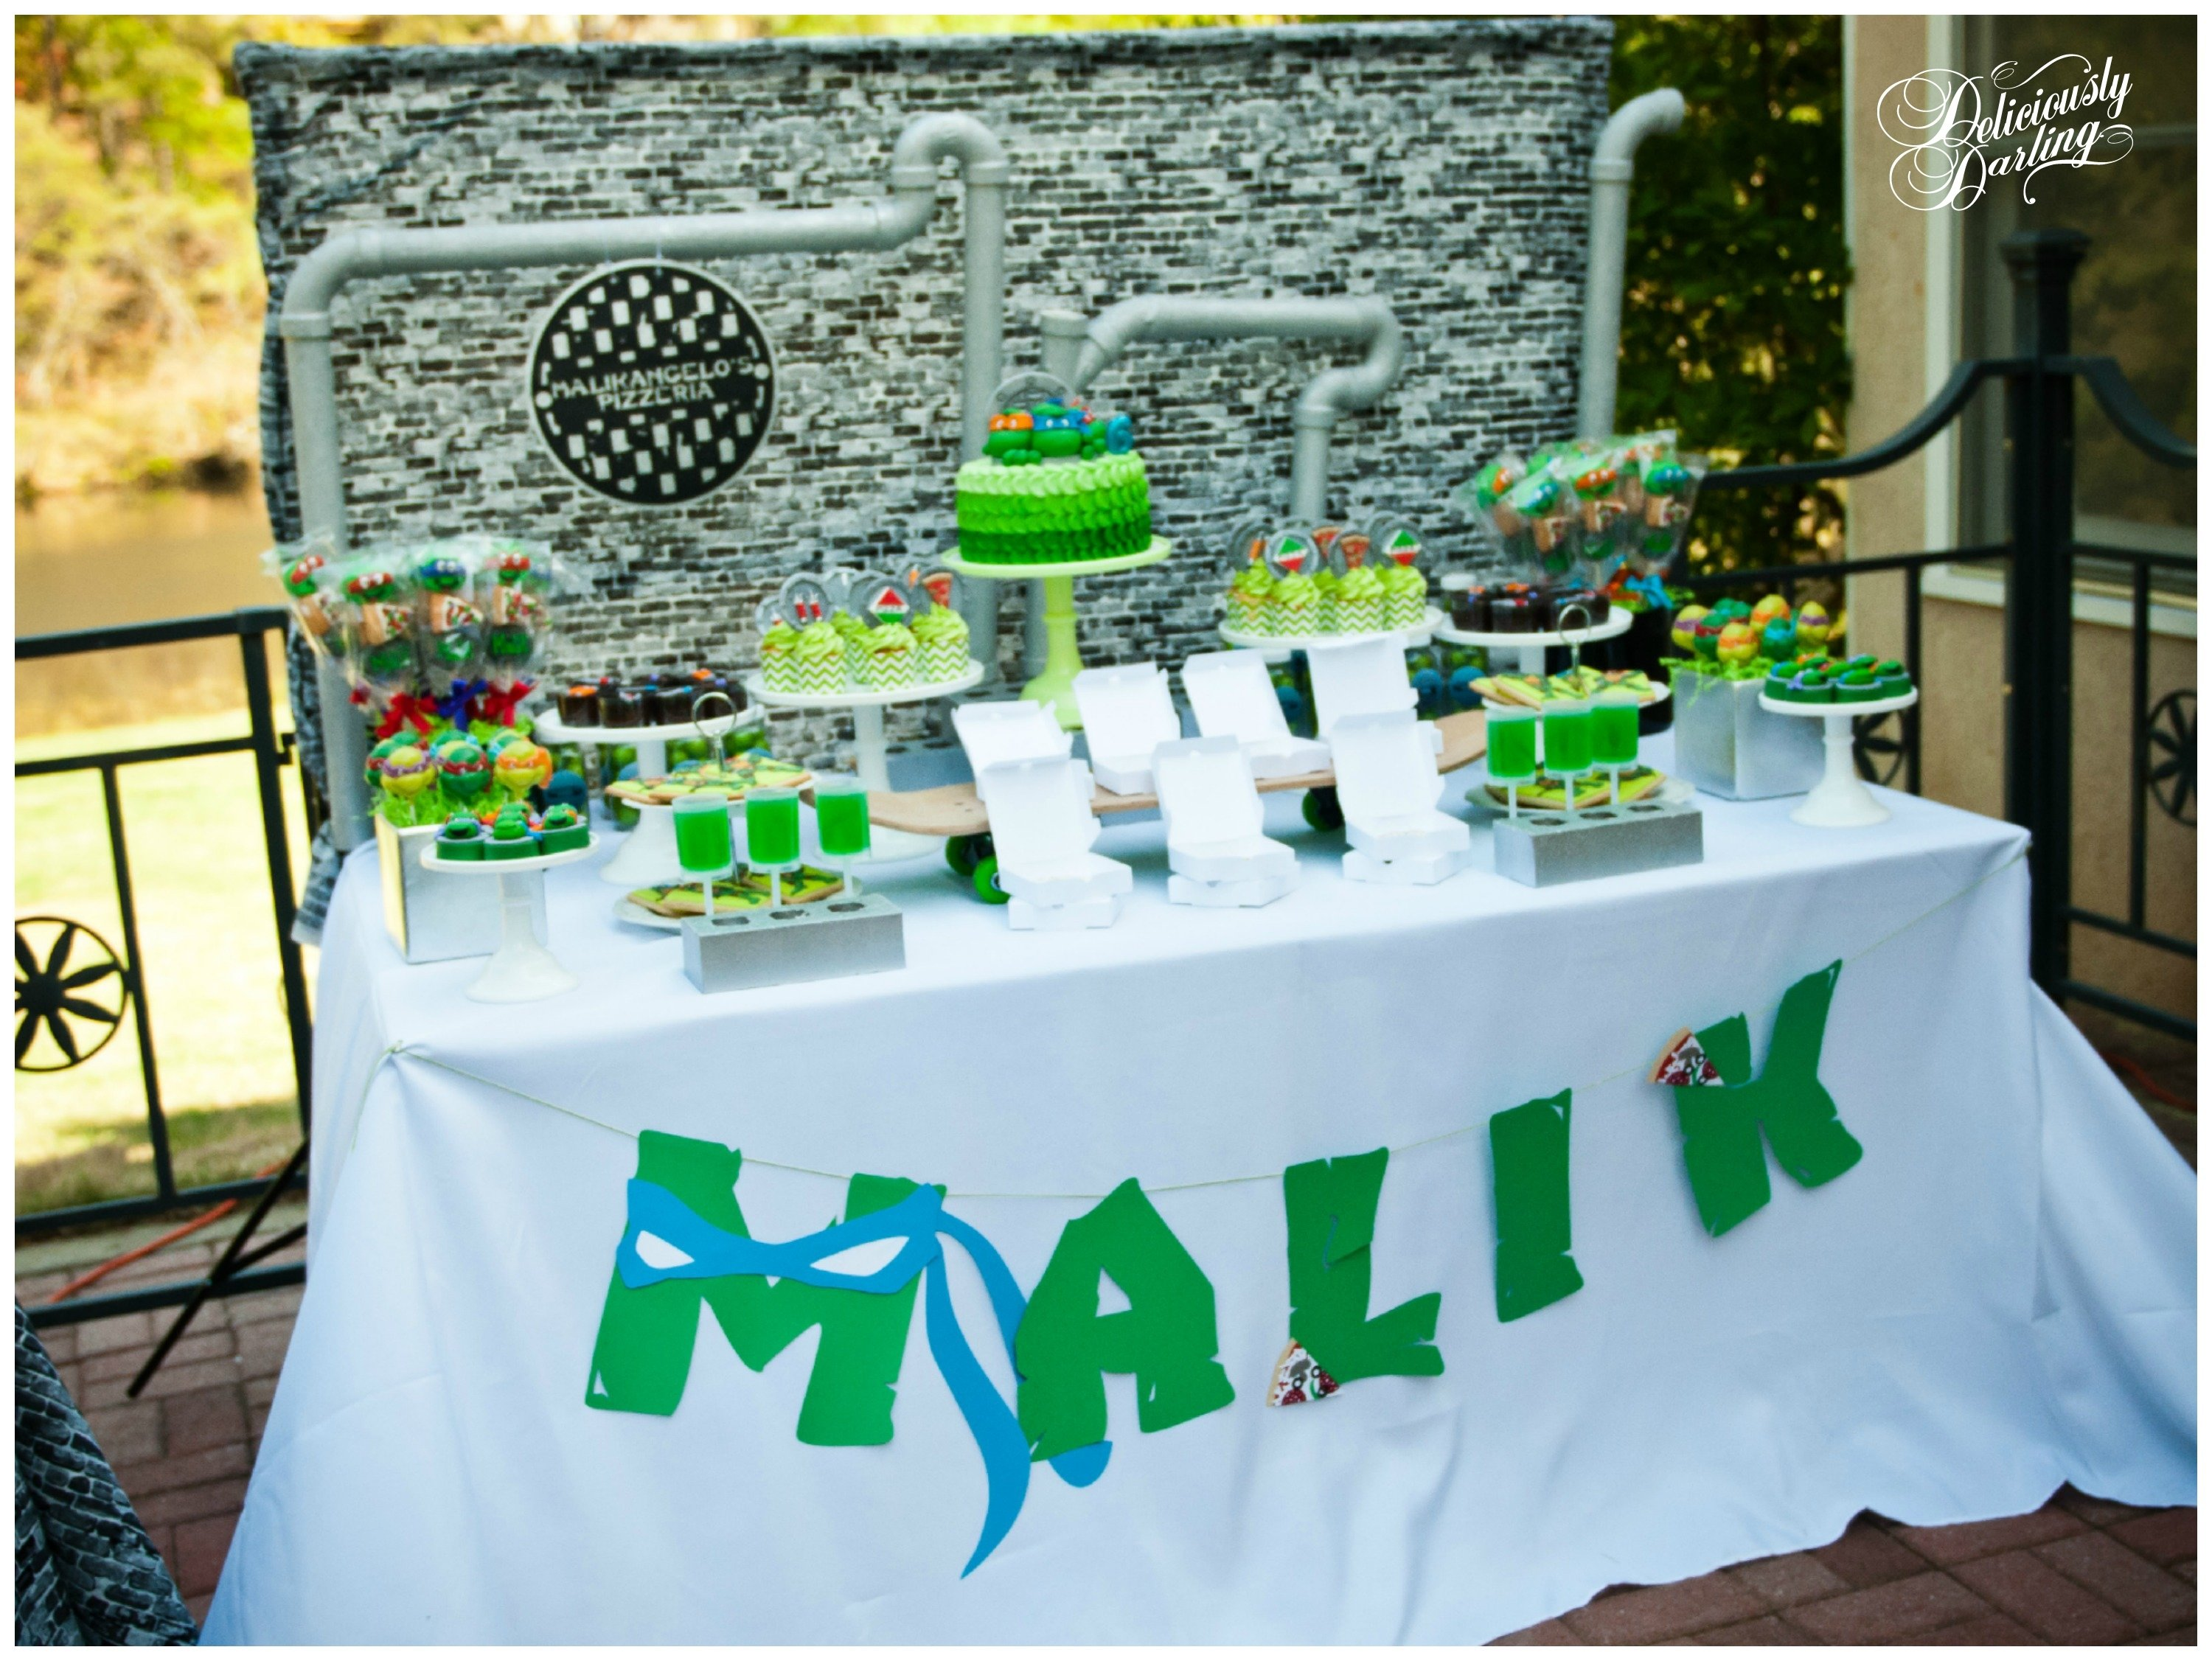 10 Best Ninja Turtle Party Decoration Ideas teenage mutant ninja turtle inspired birthday party deliciously 7 2020